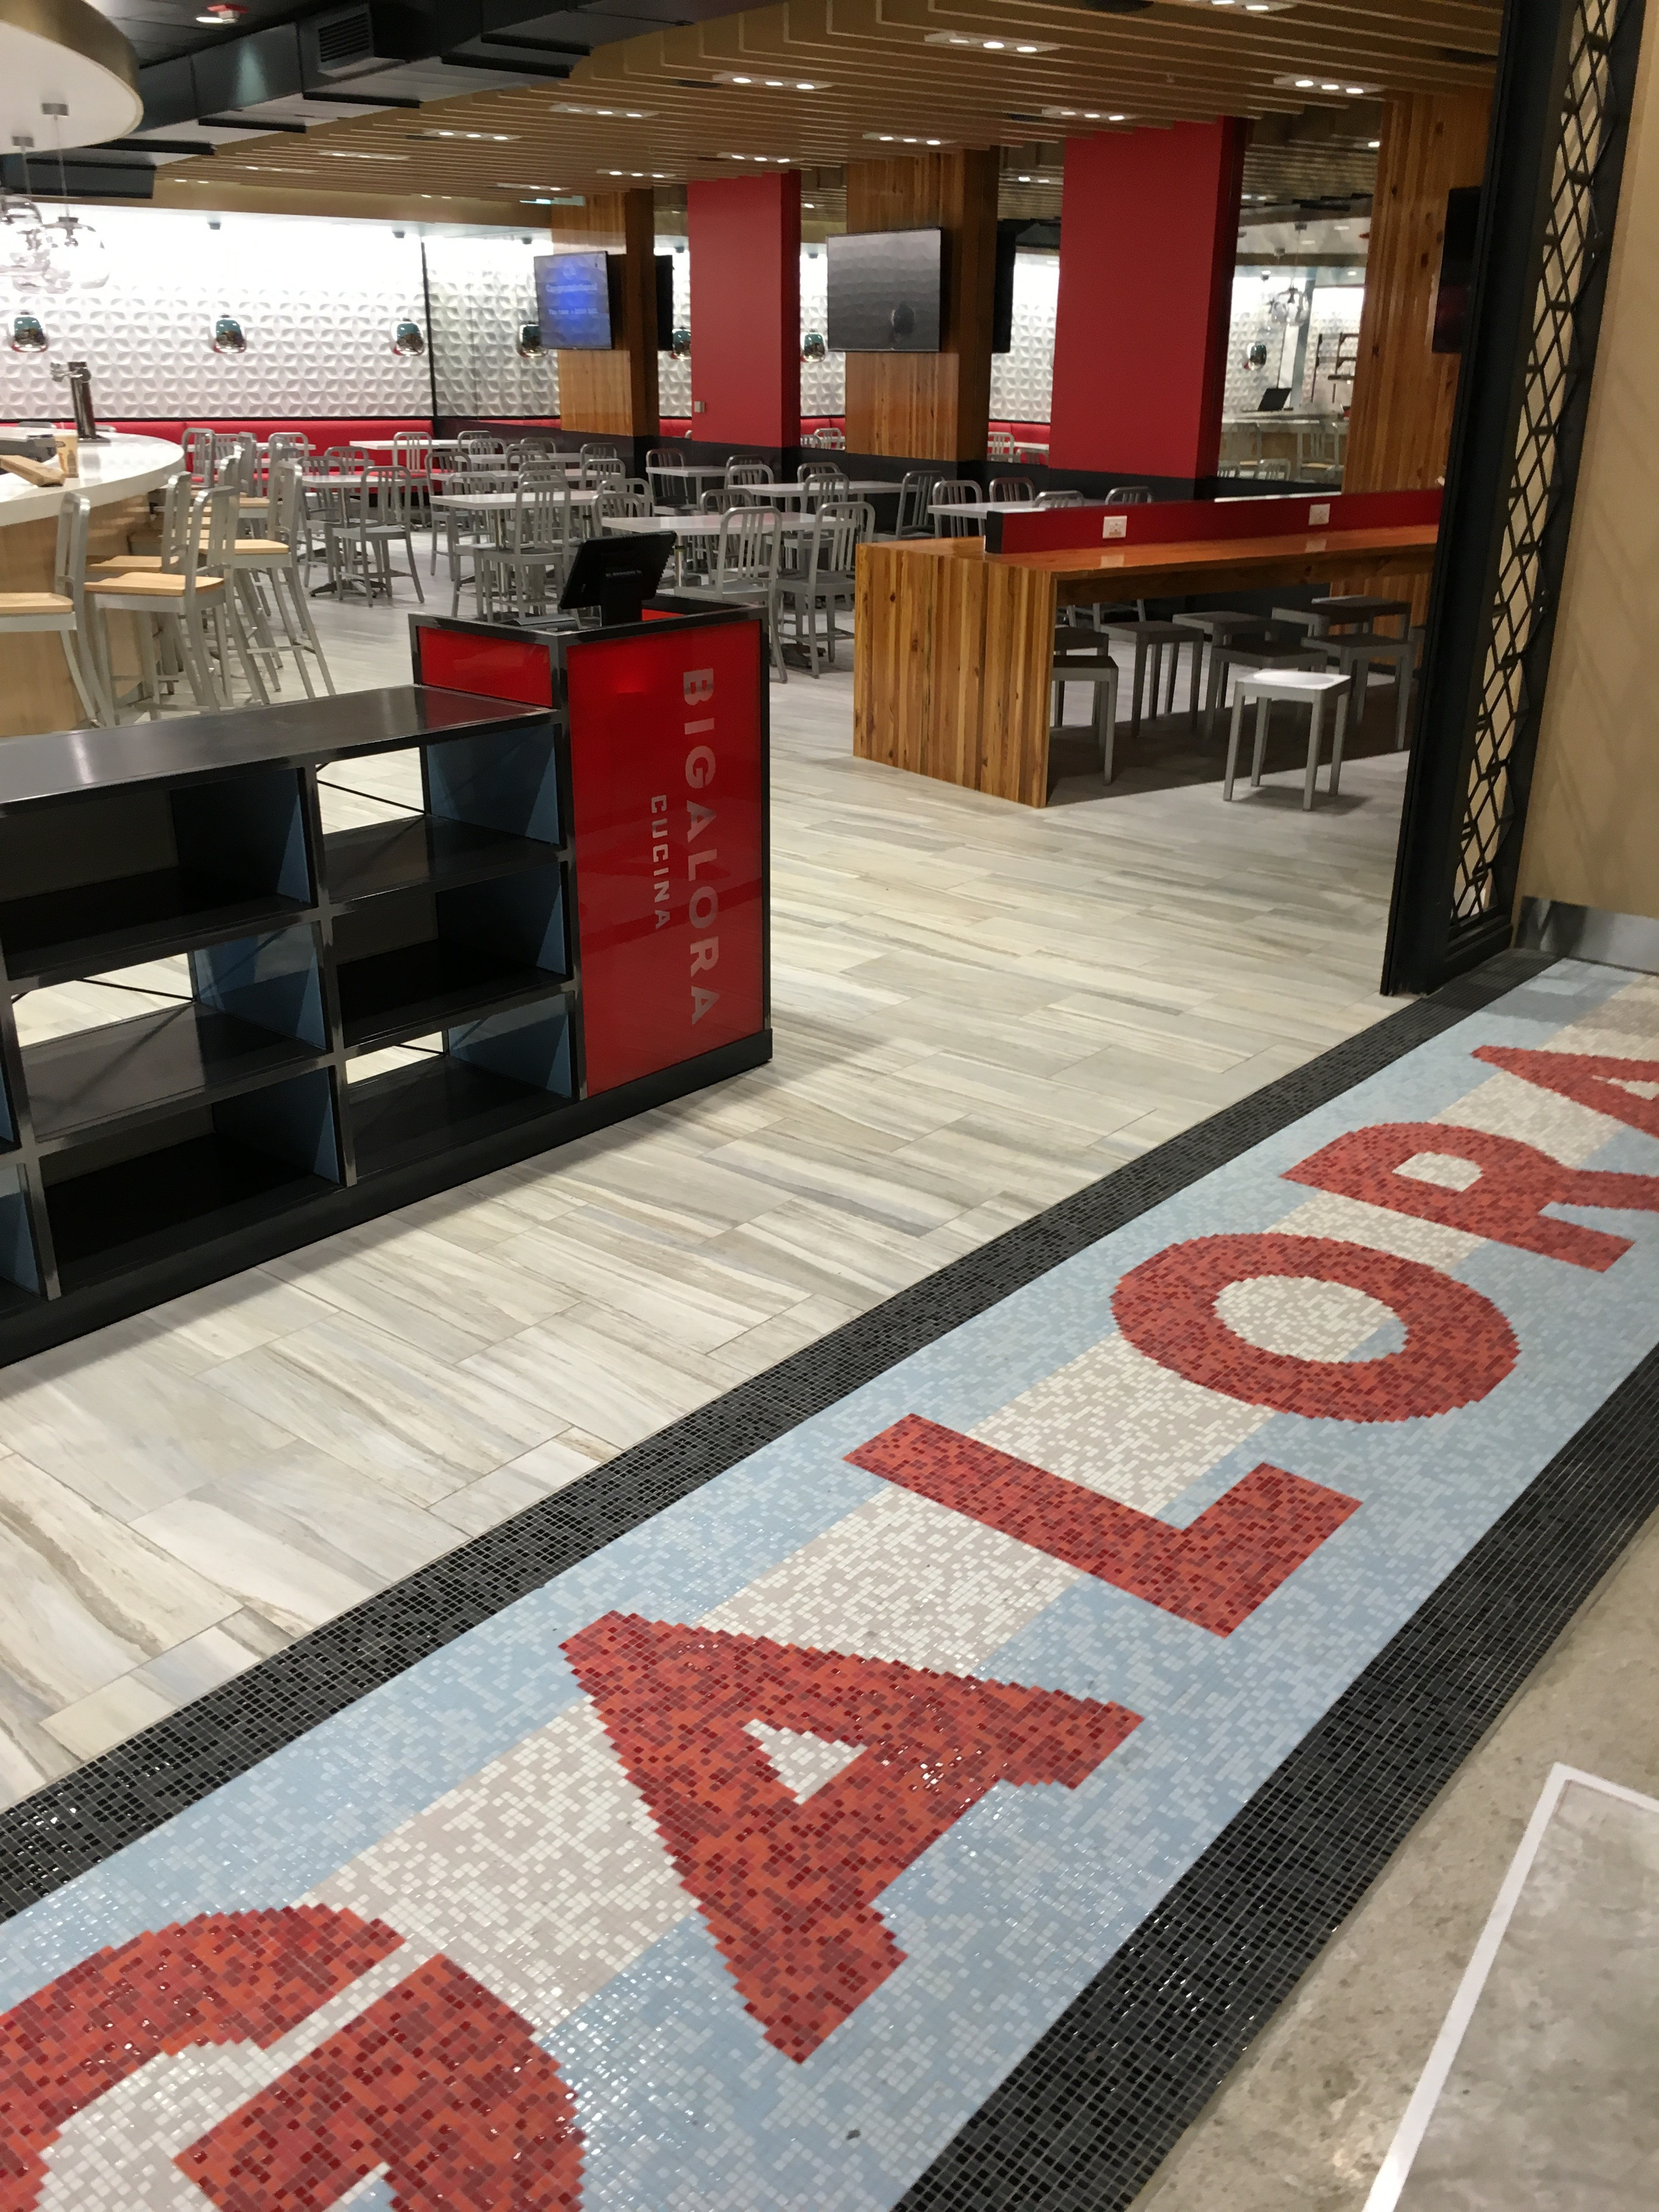 foodie travel advisory bigalora helping in dtw dining expansion click to enlarge the entrance of the newest bigalora outlet in mc ra terminal dec 11 courtesy